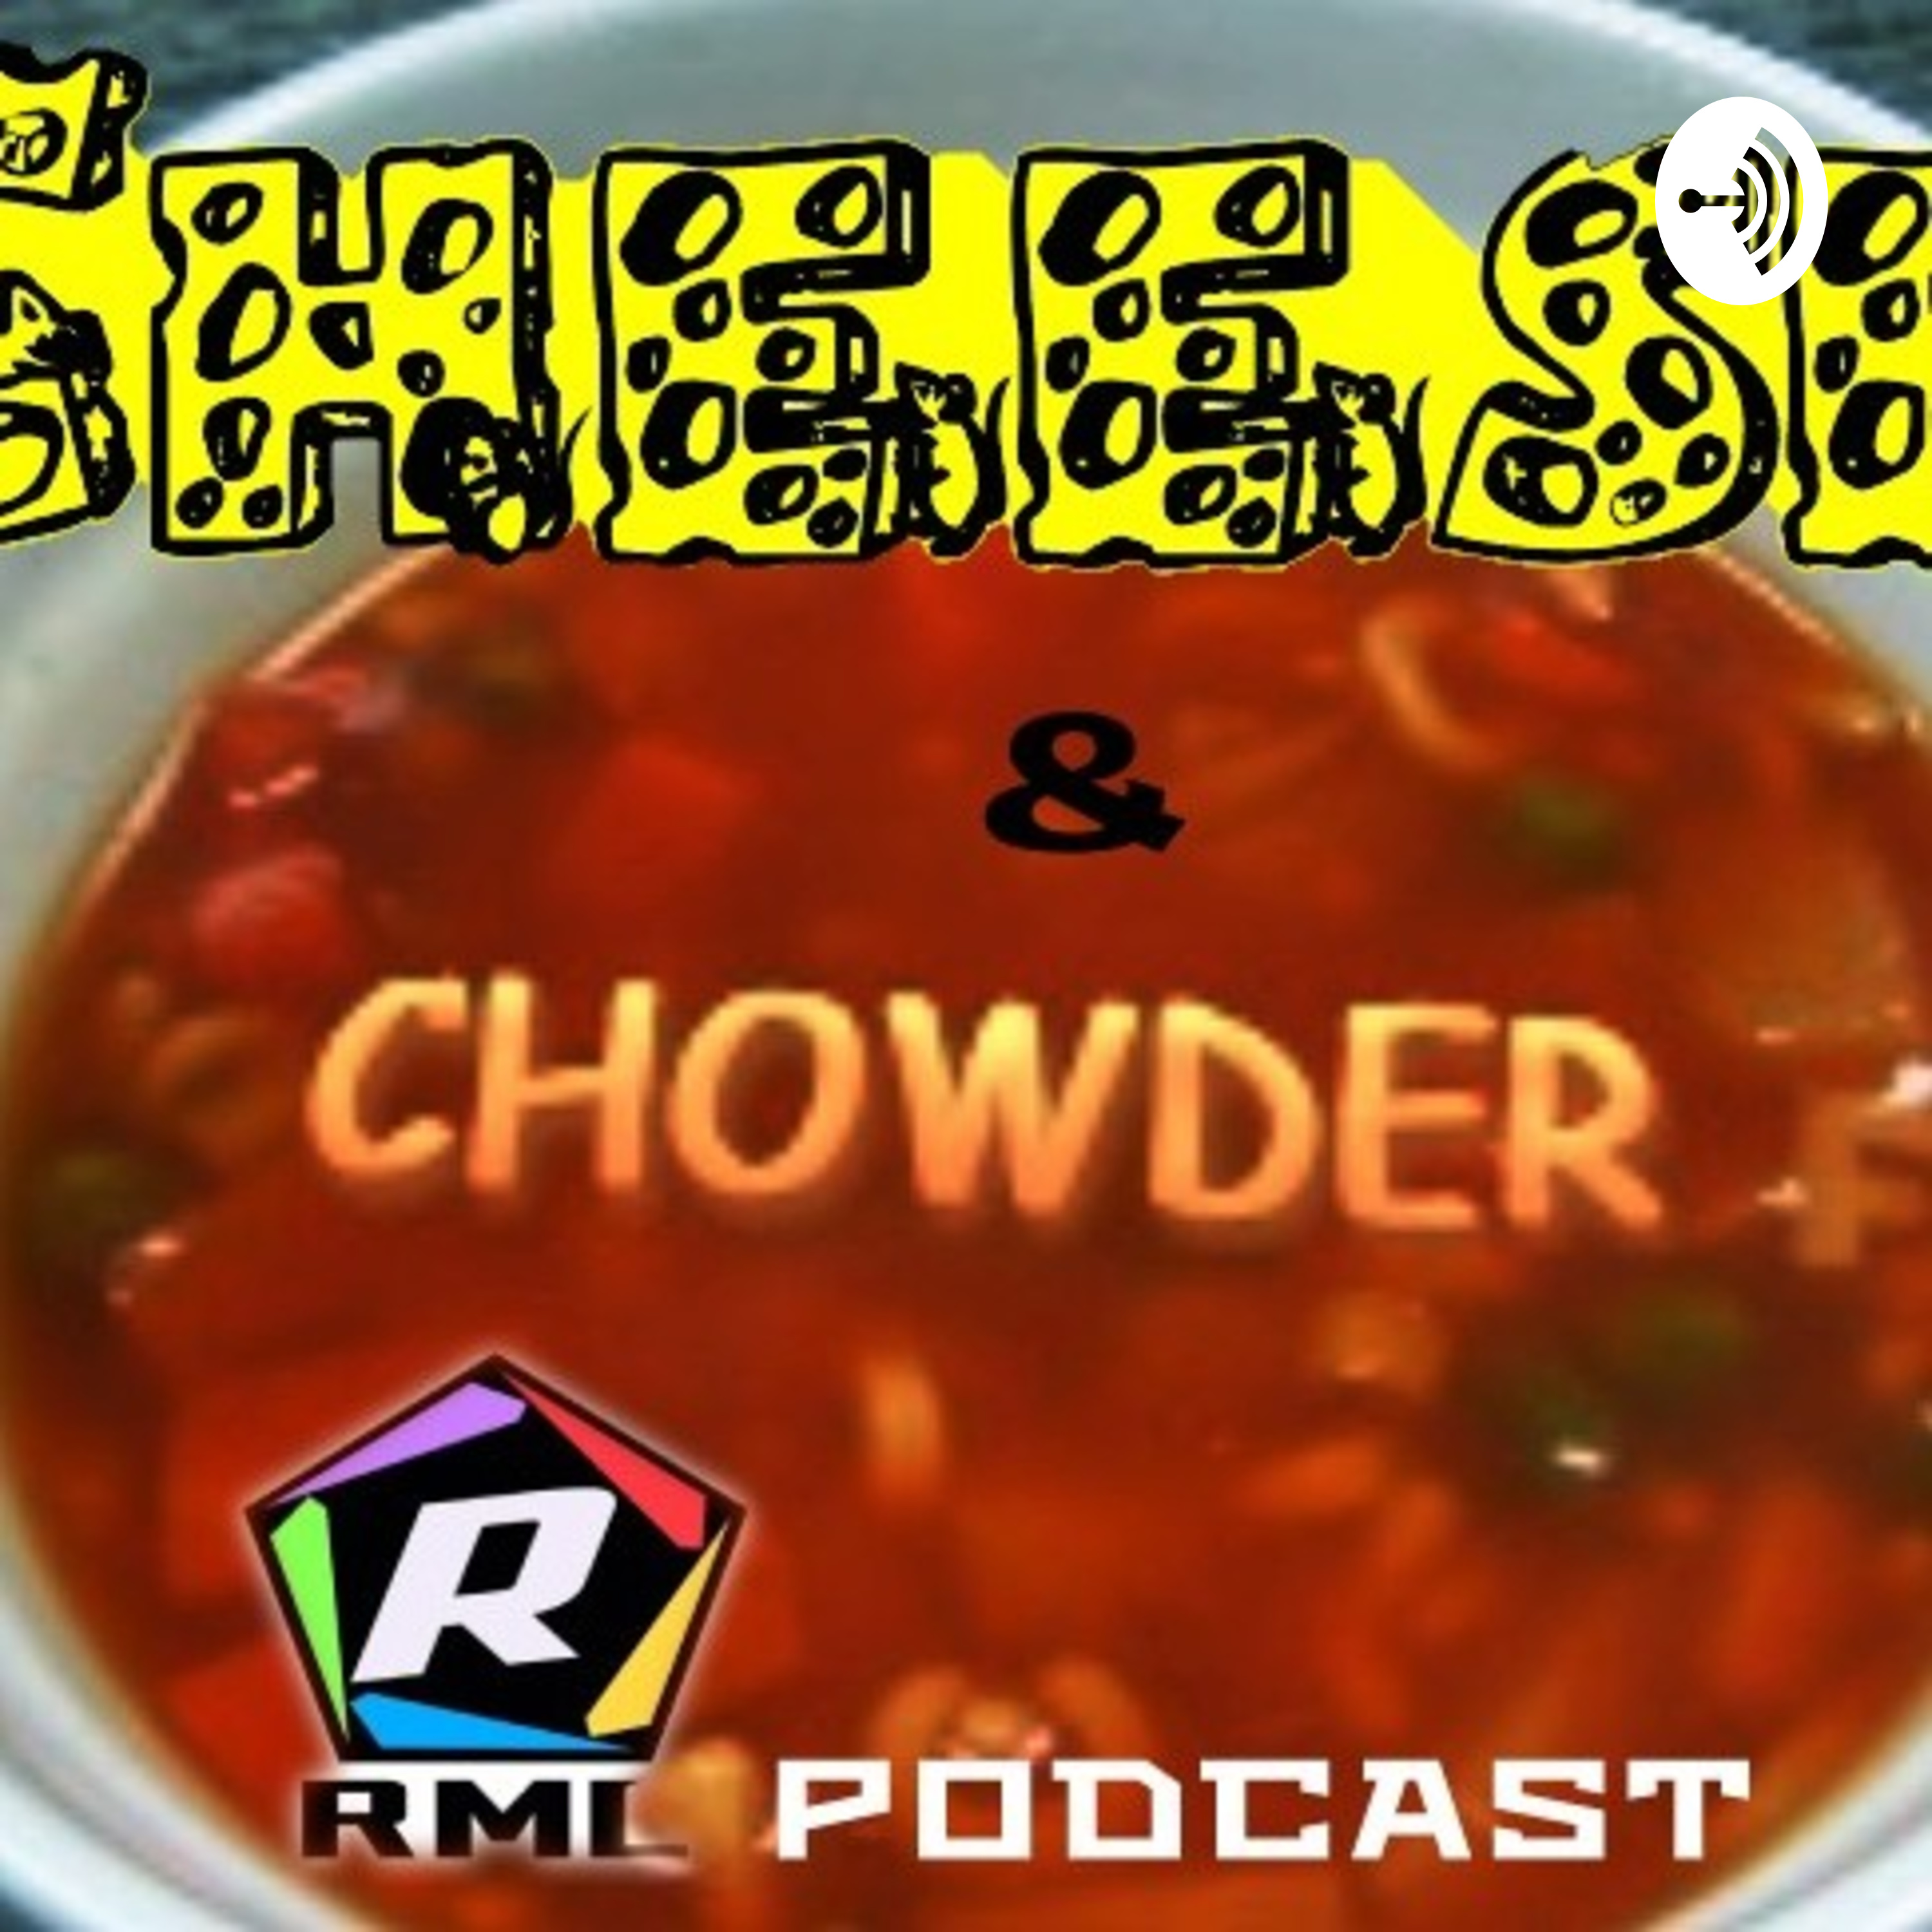 Cheese & Chowder: The RML Podcast | Listen via Stitcher for Podcasts